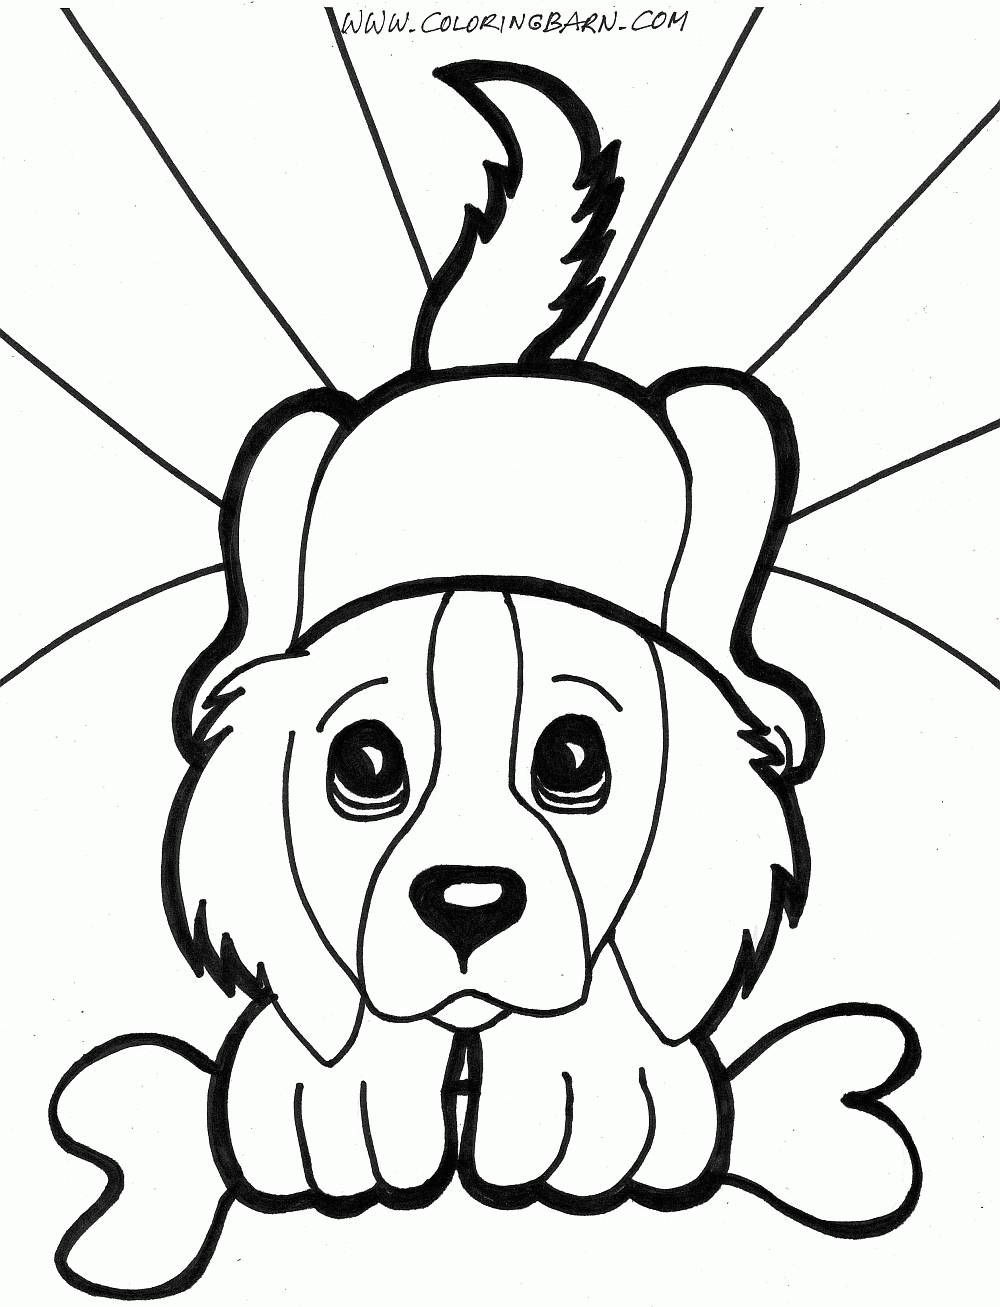 simple animal drawing puppy coloring pages for all agespuppy coloring with coloring pages draw easy animals